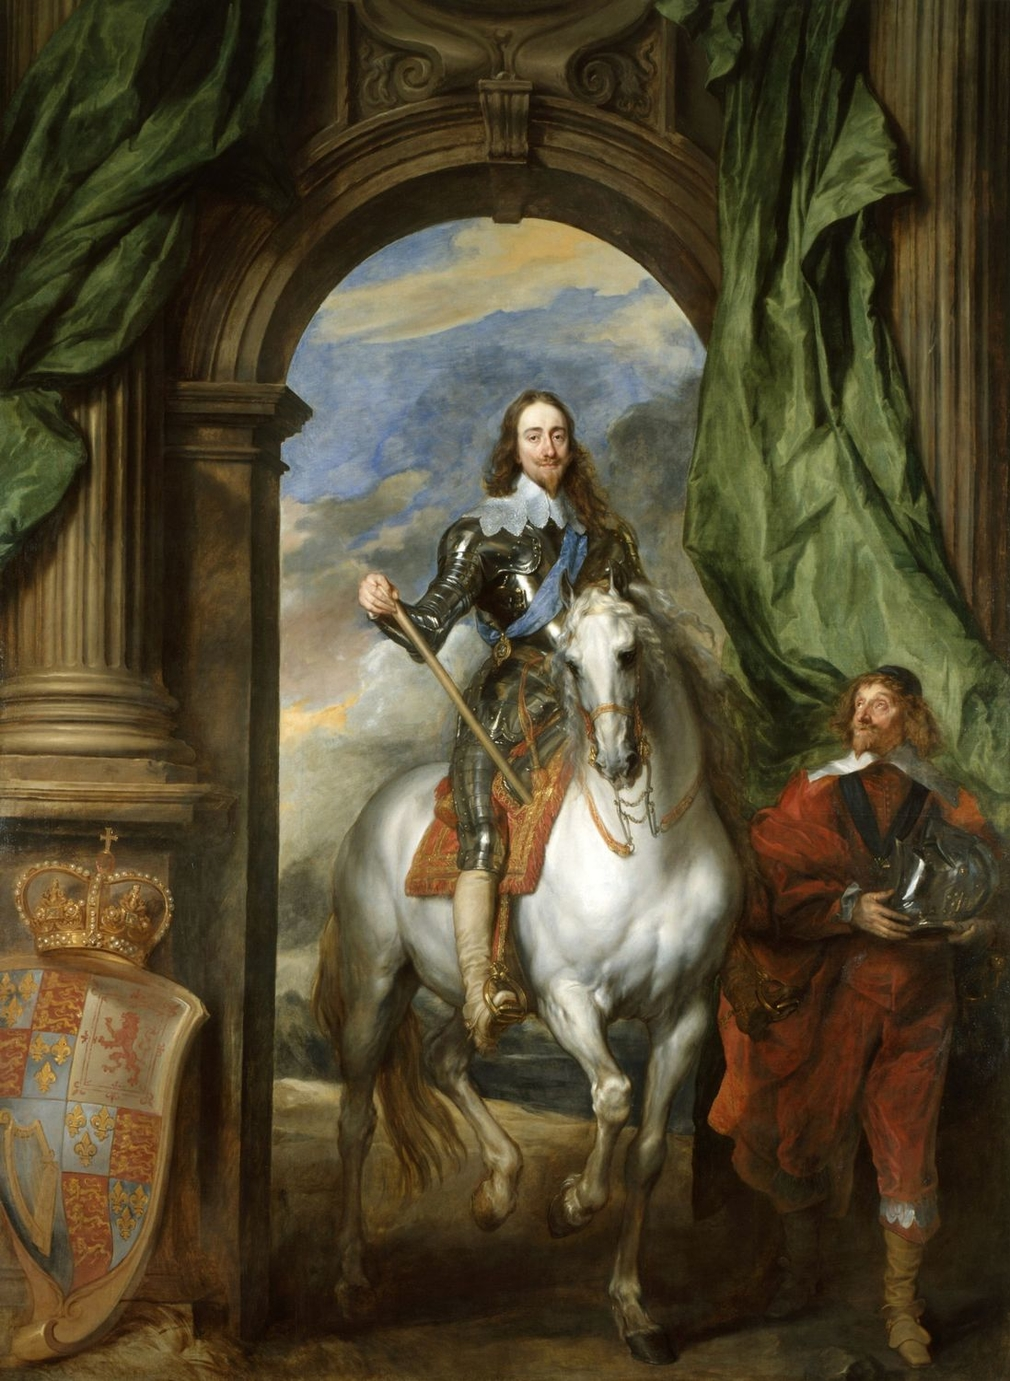 On his appointment as Principal Painter to Charles I in 1632, the Flemish artist Van Dyck - Rubens's most gifted follower - was required to specialise in portraiture. This is one of the chief paintings to result from his appointment, which revolutionised